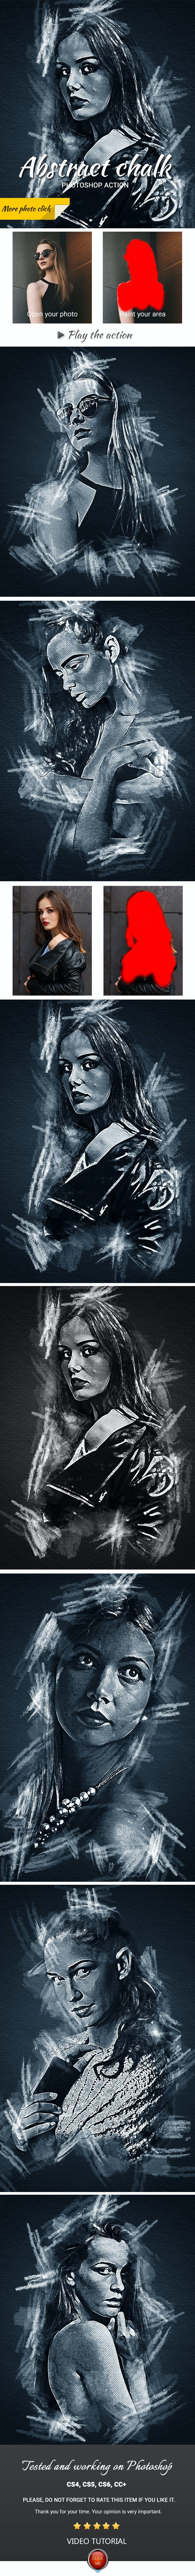 Abstract Chalk Photoshop Action - Photo Effects Actions